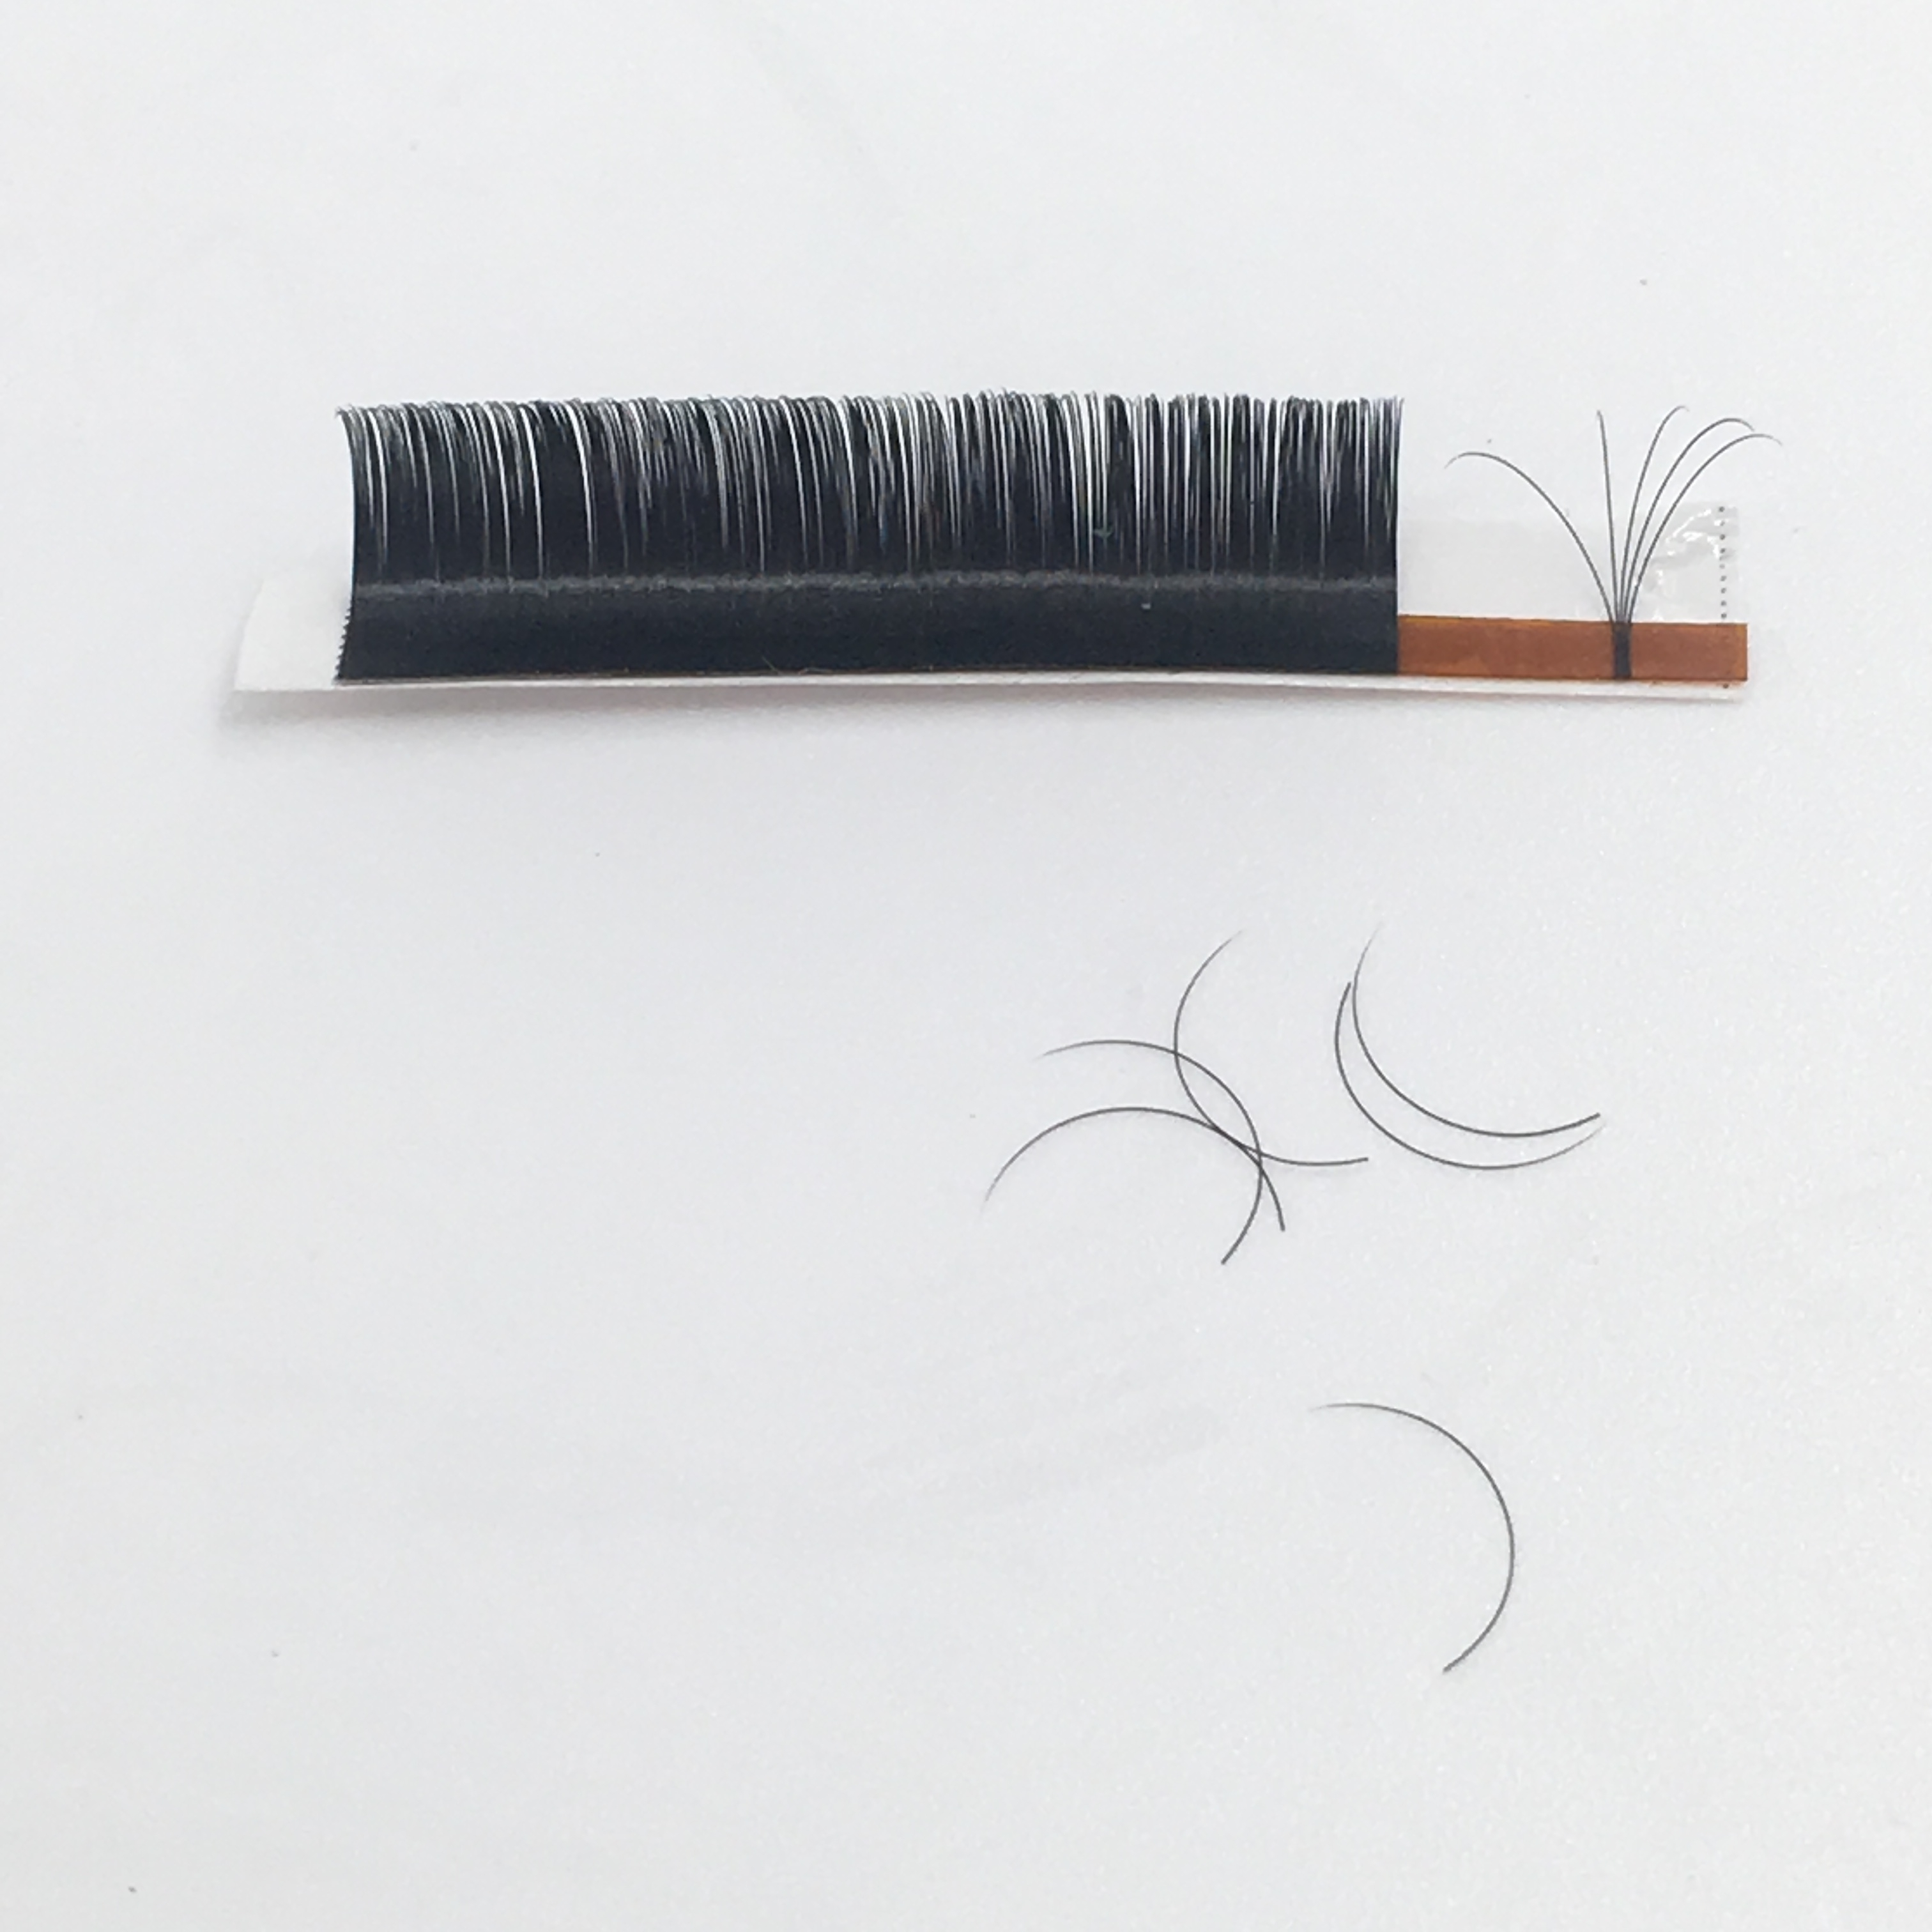 Flourishing mix lashes 8mm-15mm D C <strong>J</strong> B curl classic single lashes one by one silk false eyelashes extension lashes